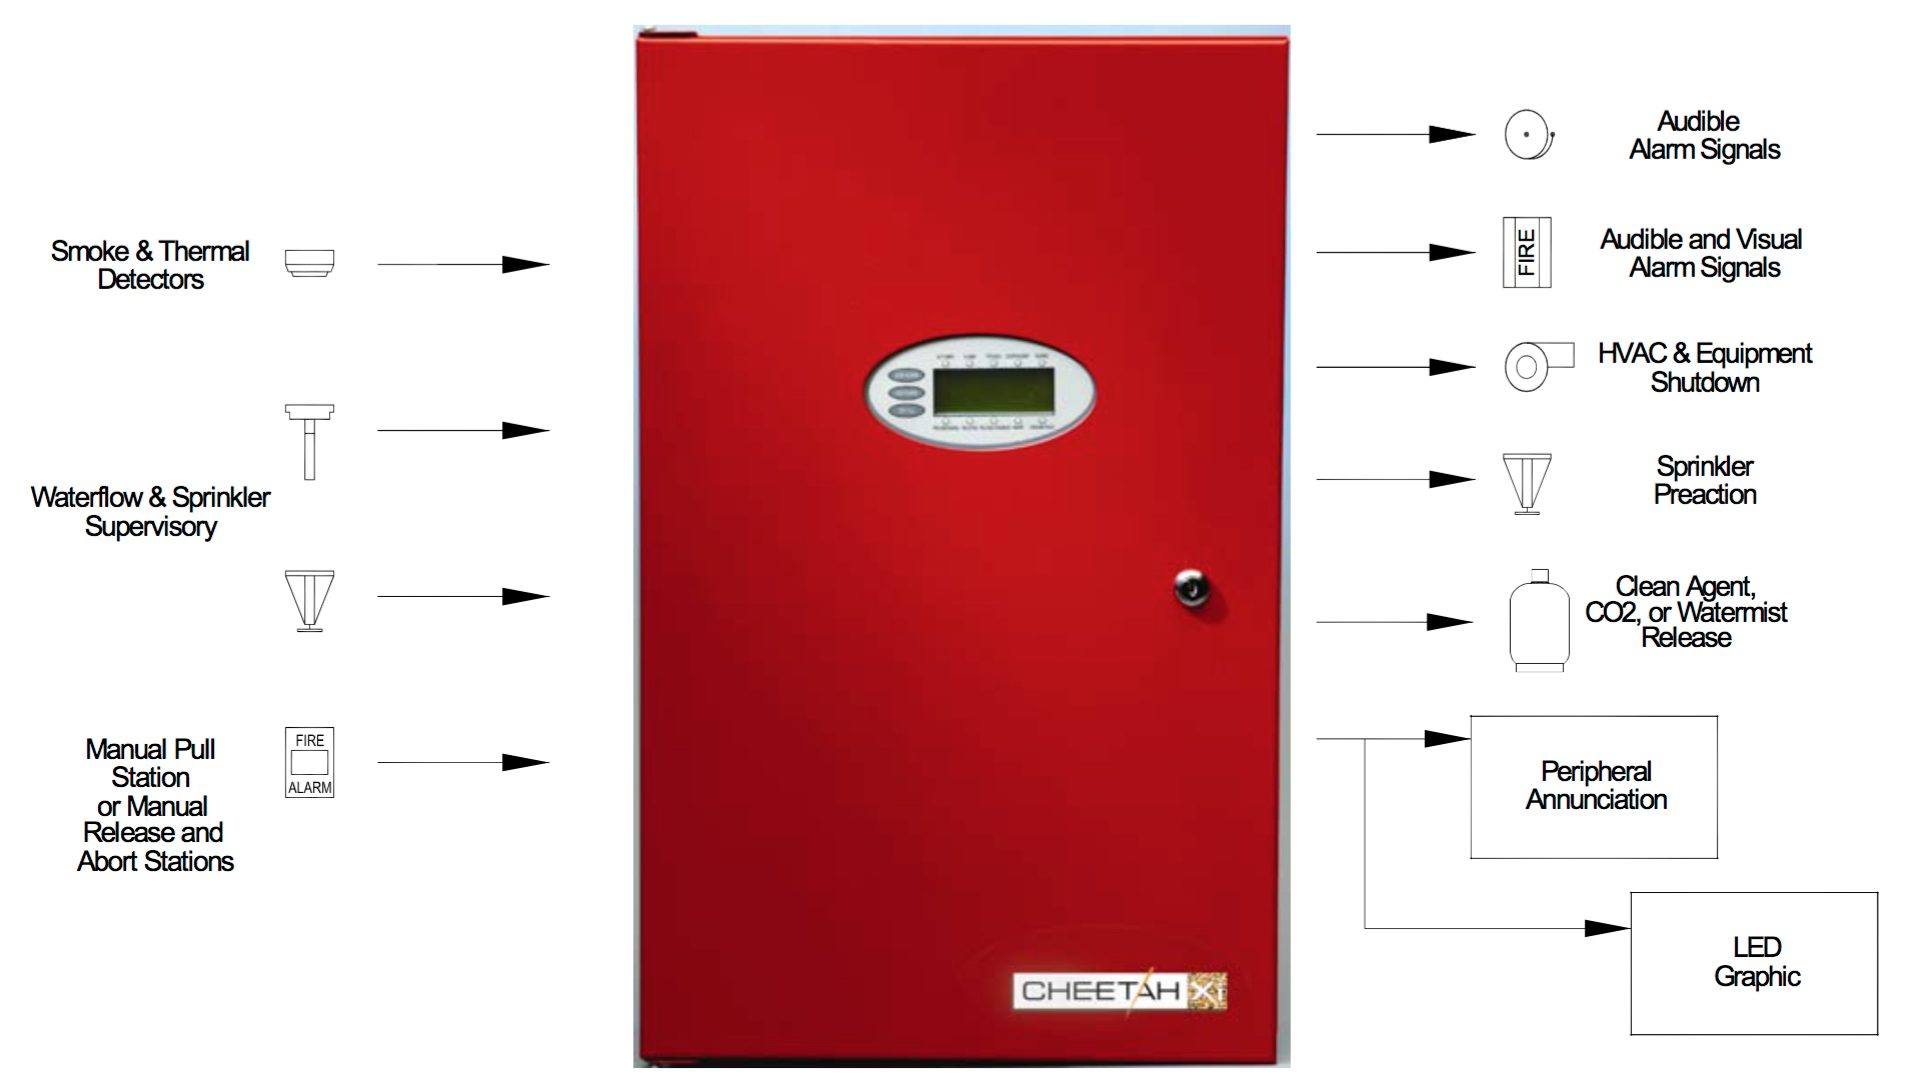 Widar Fire Protection Panel Hook Up Diagram Likewise 200 Service On Electrical Sub The Control Is Heart Of System It Accepts Input Events And Determines Which Output Actions Will Take Place Accordinagly